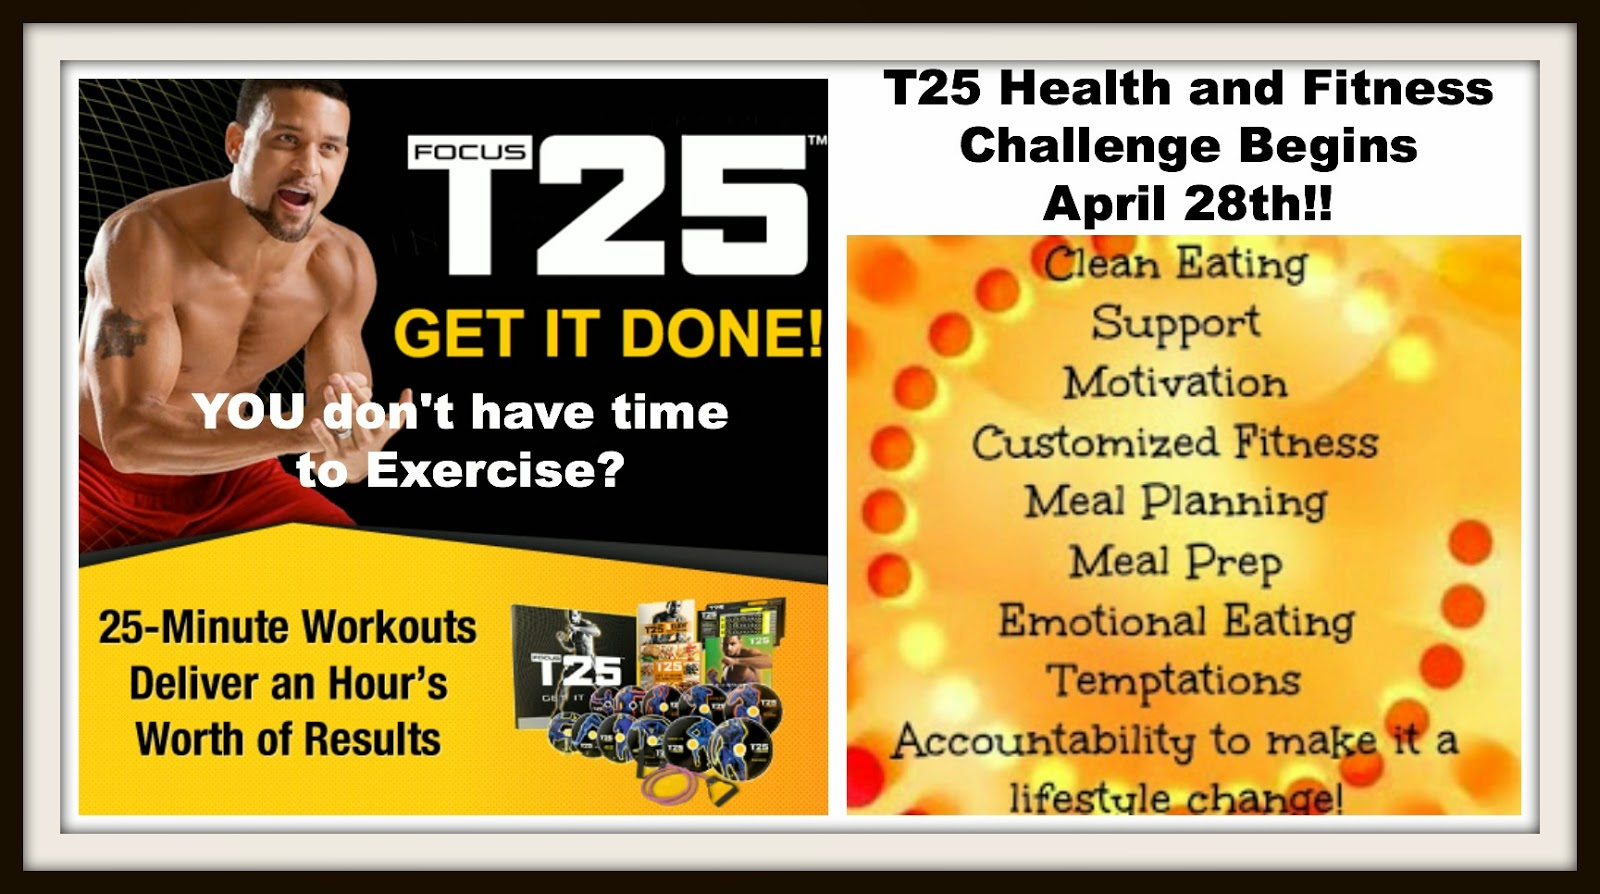 Focus T25, T25 challenge group, T25 health and fitness challenge, T25 results, quick workouts that deliver, quick workouts to do at home, quick workouts for men, Focus T25 review, Ft25 Schedule,  quick workouts for women, how to find time to exercise